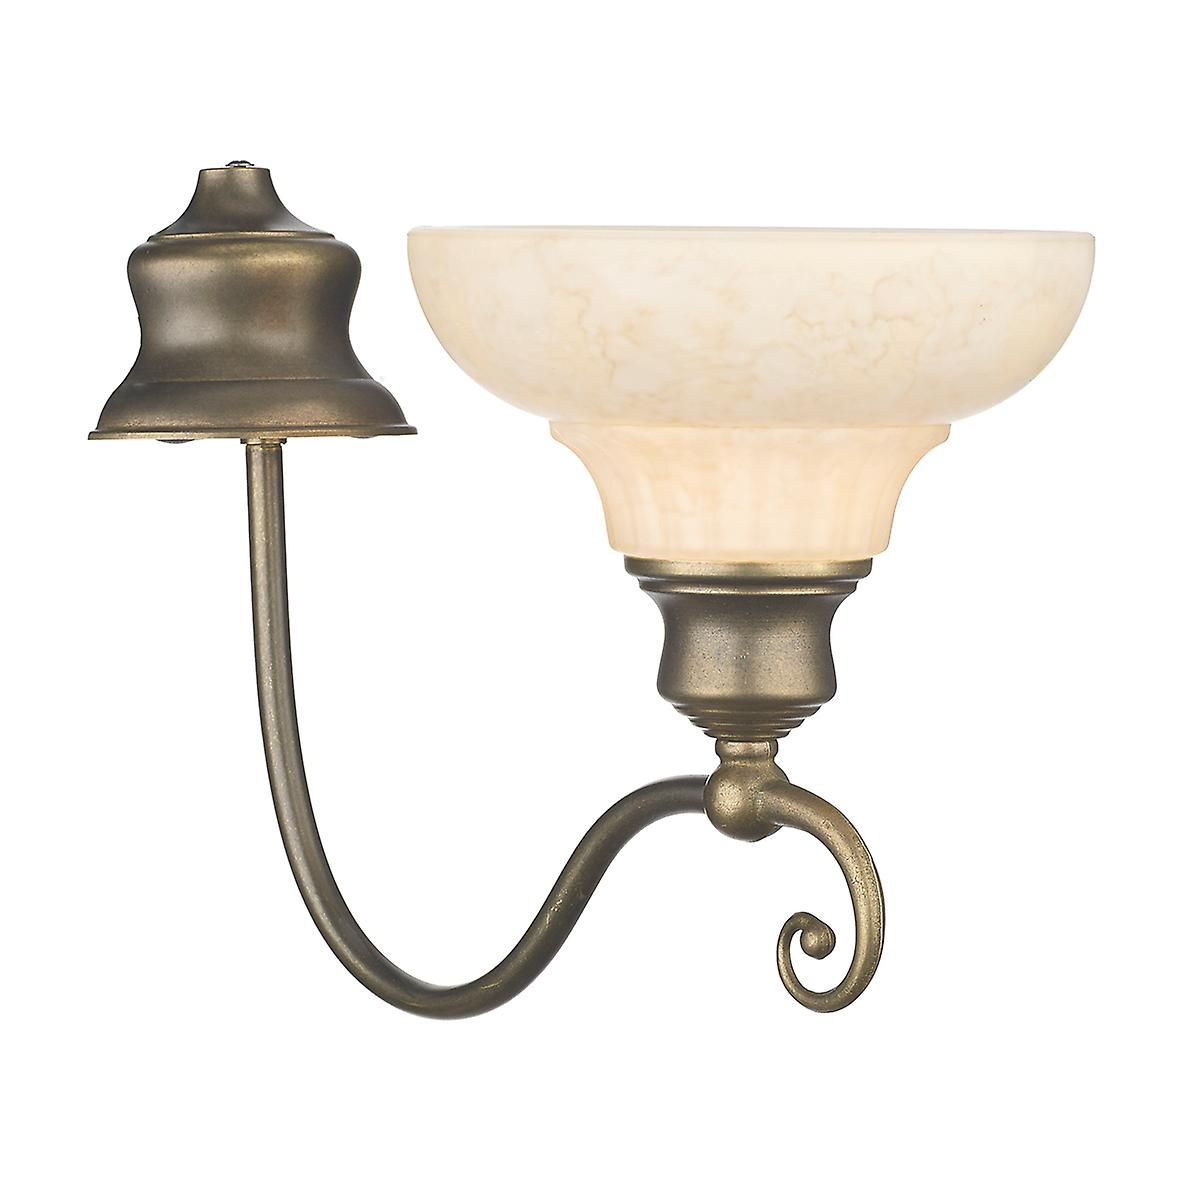 David Hunt ST111 Stratford Single Wall Bracket In An Aged Brass Finish With Glass